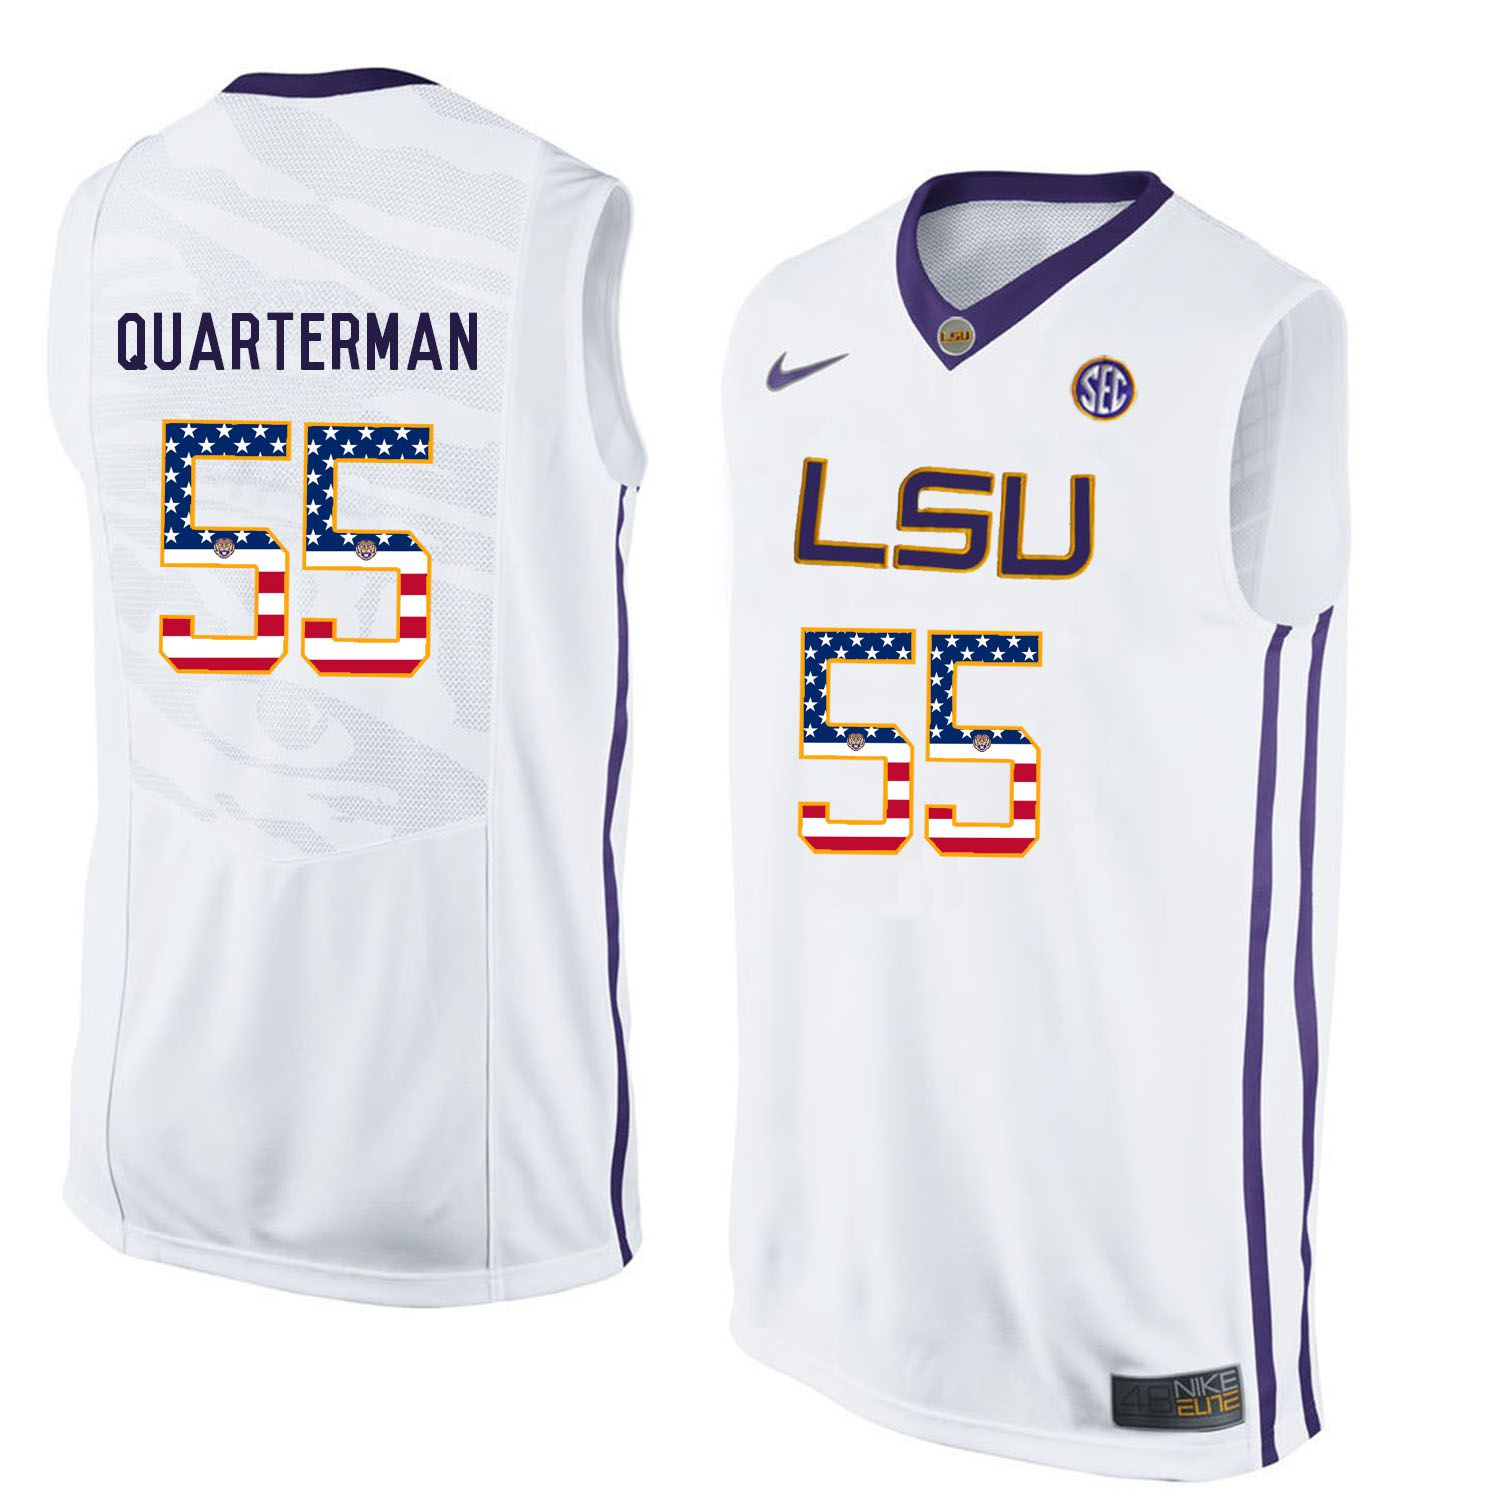 Men LSU Tigers 55 Quarterman White Flag Customized NCAA Jerseys